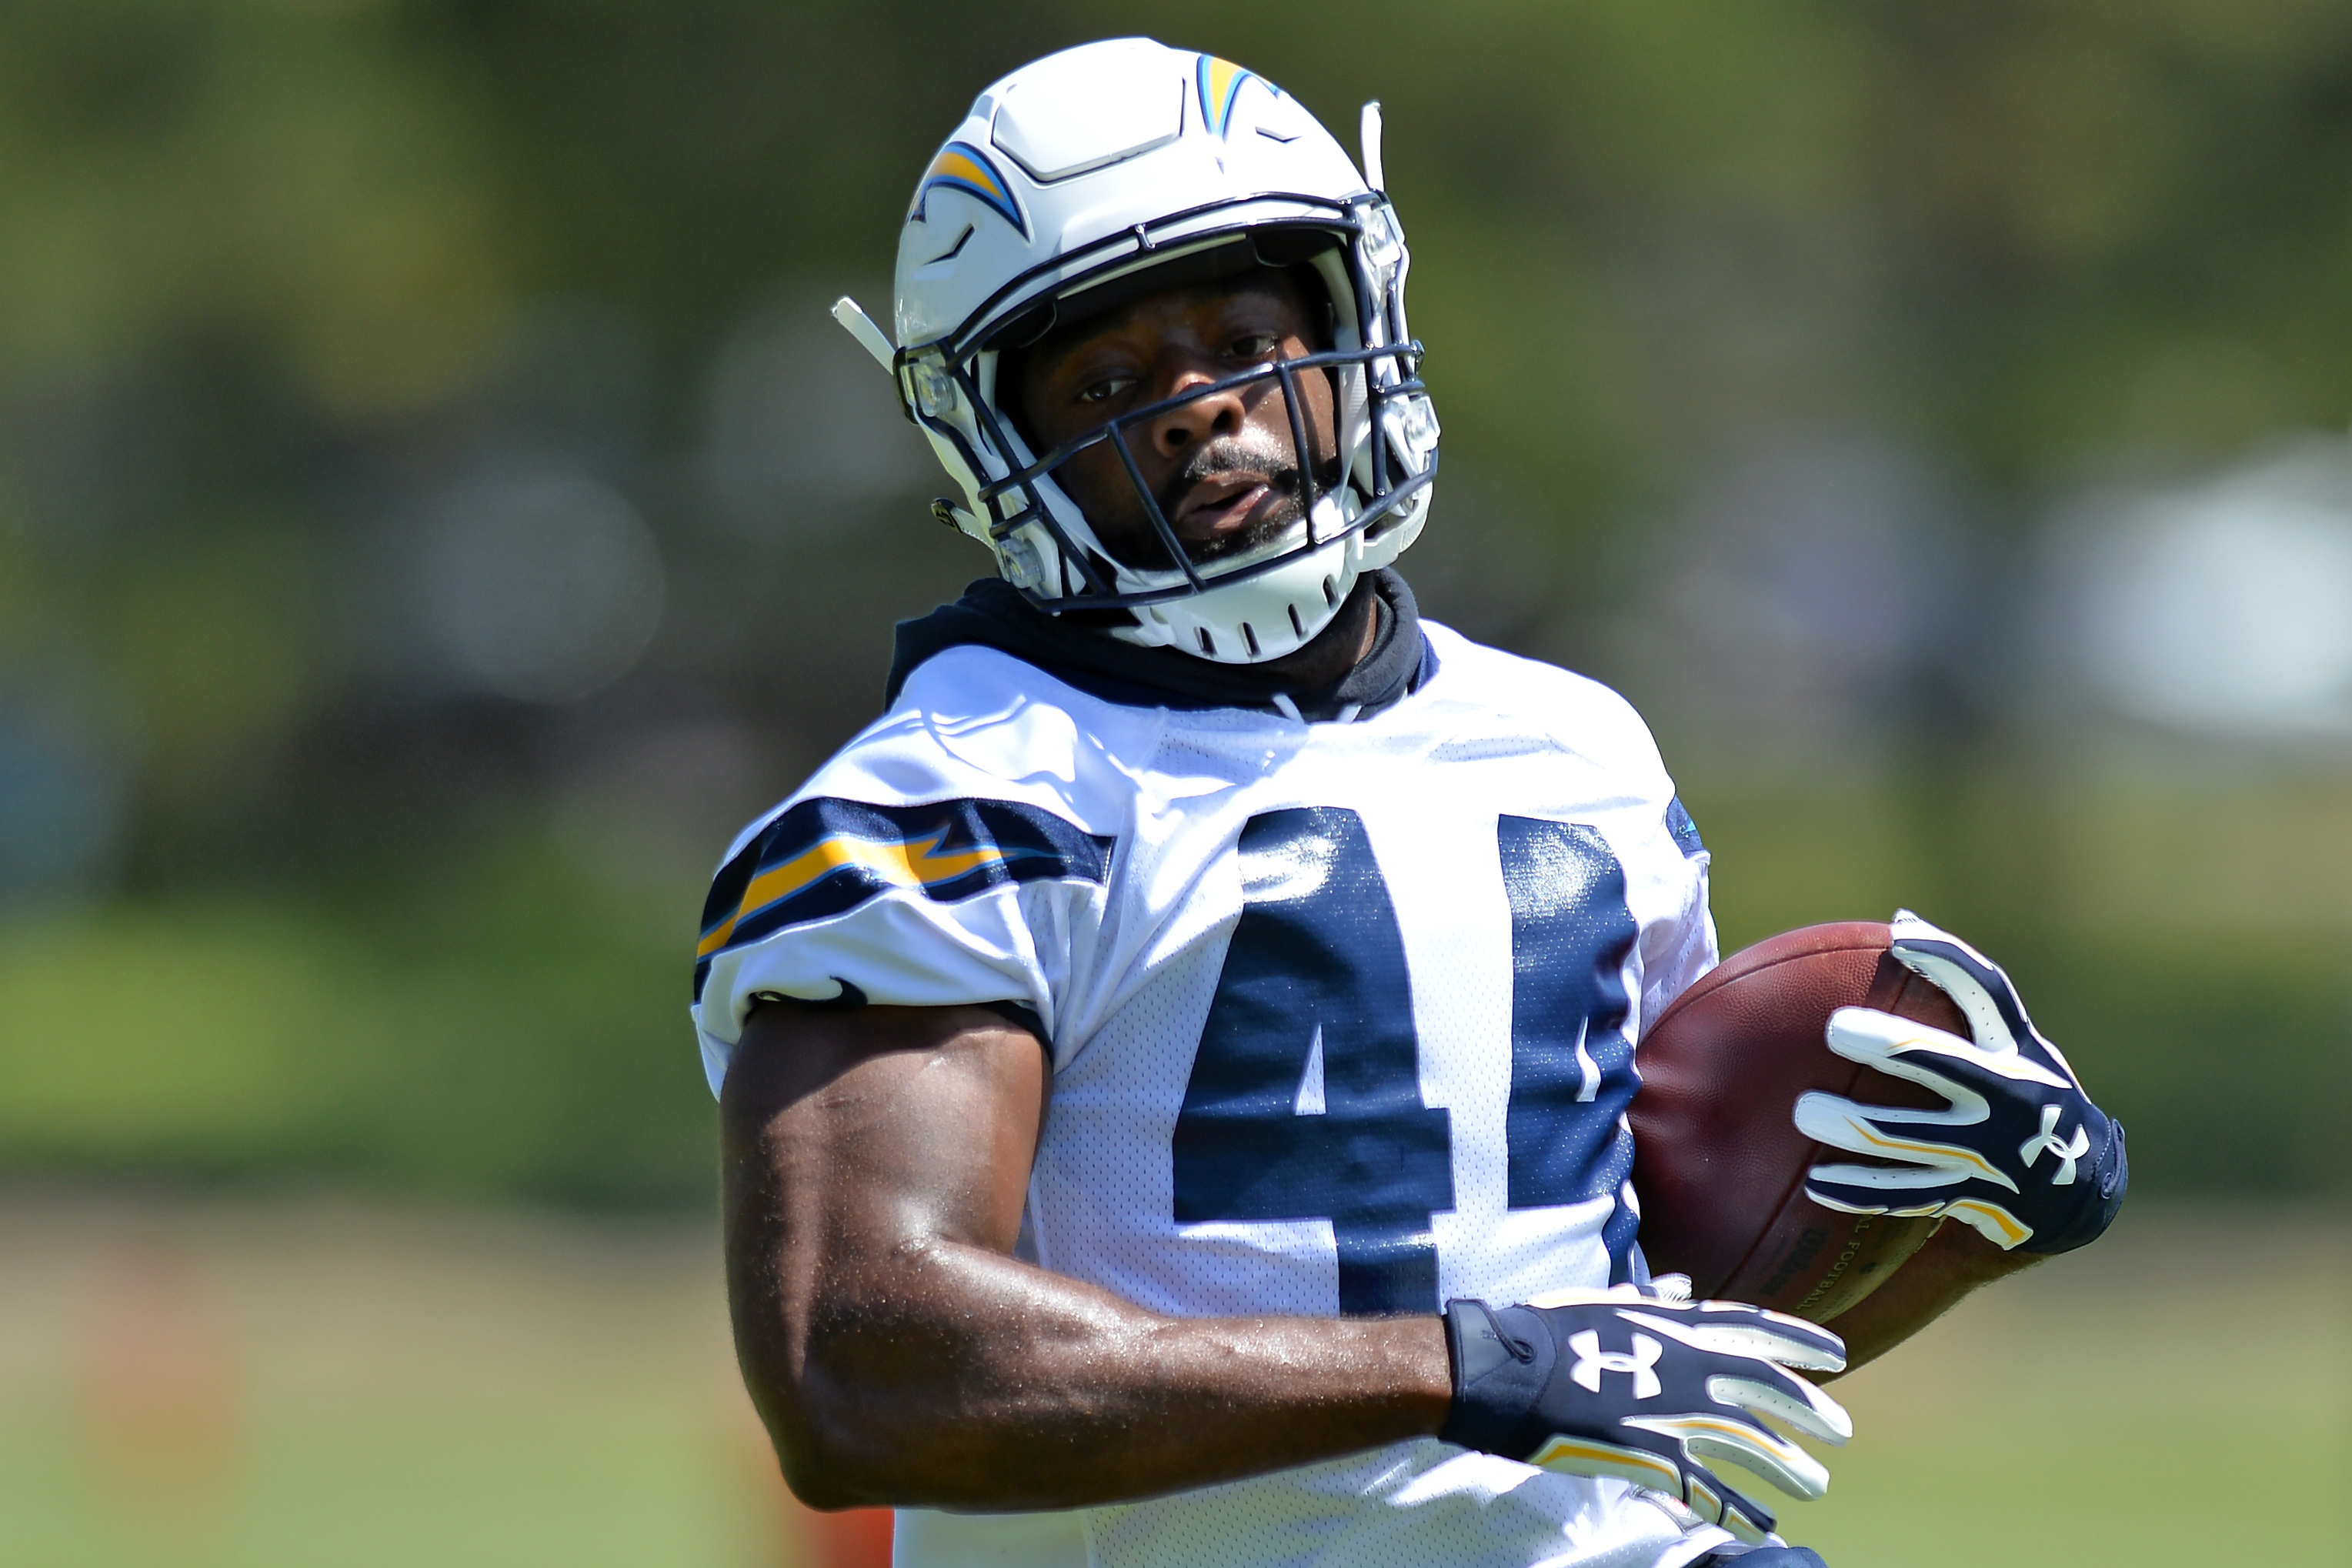 10107293-nfl-los-angeles-chargers-minicamp